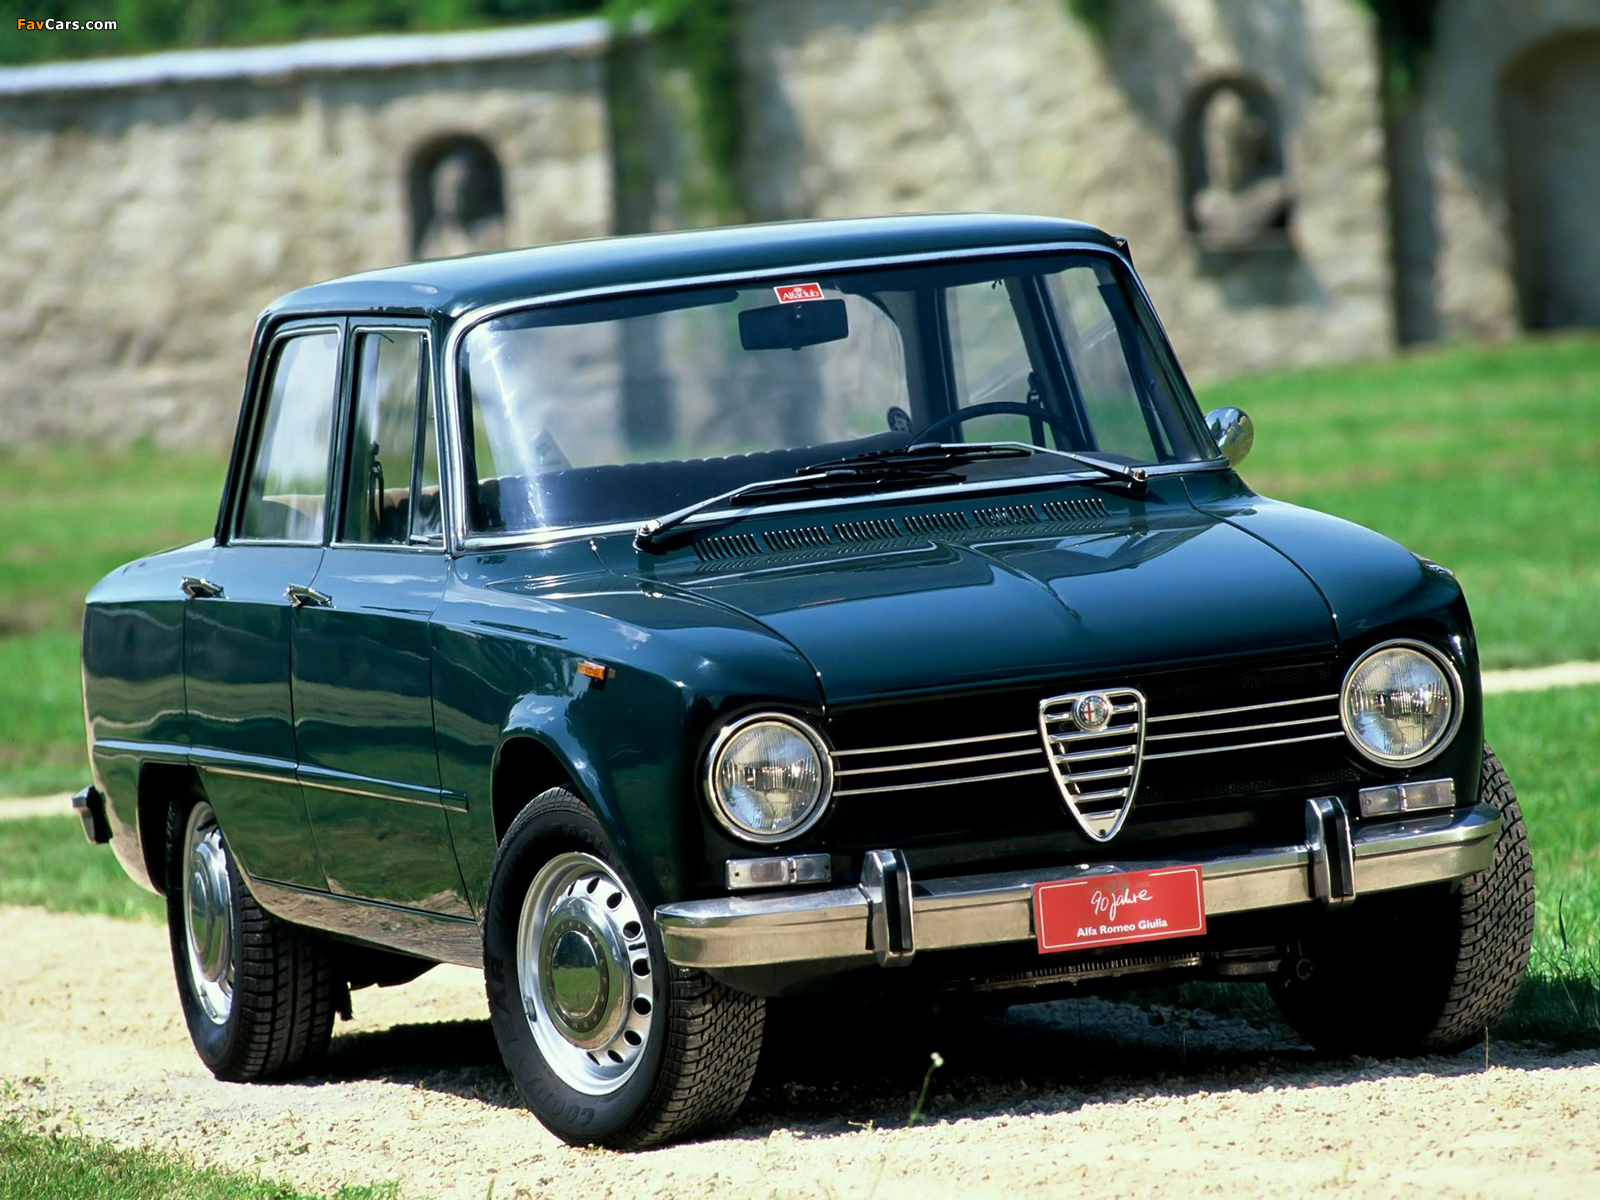 alfa romeo giulia 1300 super 115 1970 1974 wallpapers 1600x1200. Black Bedroom Furniture Sets. Home Design Ideas